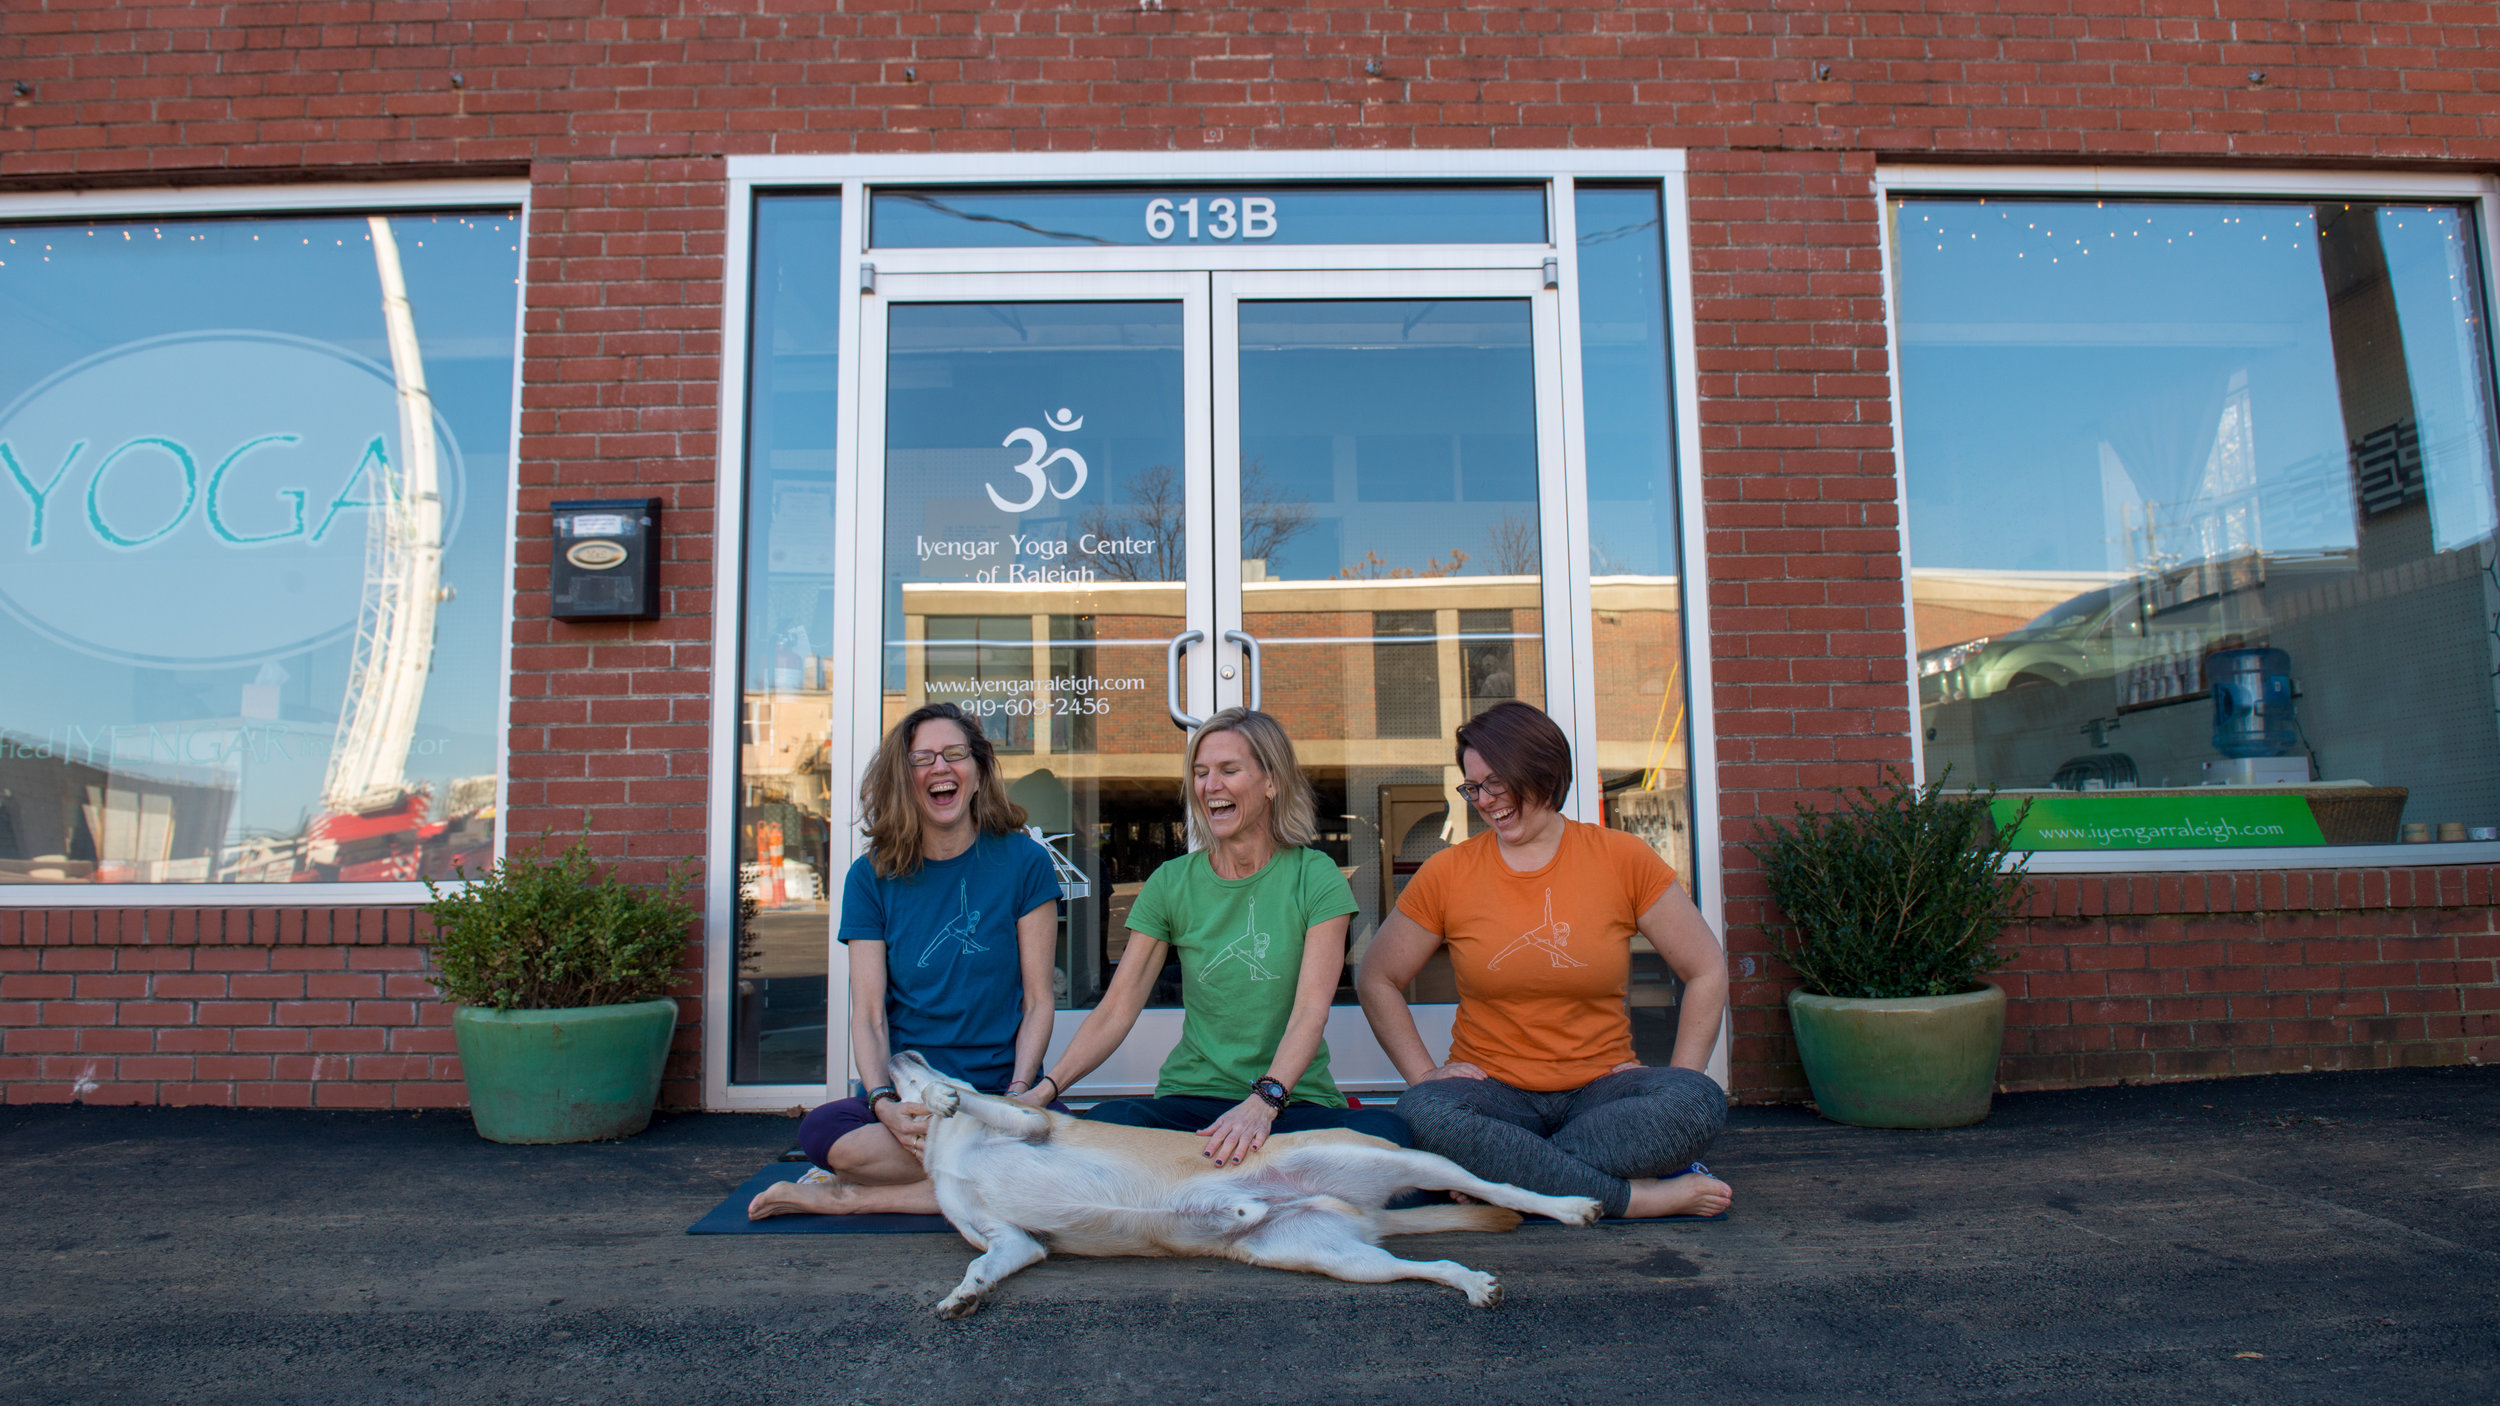 Graham, Heather and Mary Margaret have a huge love for dogs. Graham's dog Hogan enjoys joining her as she practices as well as posing in pictures during photo shoots. One of Hogan's favorite poses is lying on his back in Savasana.